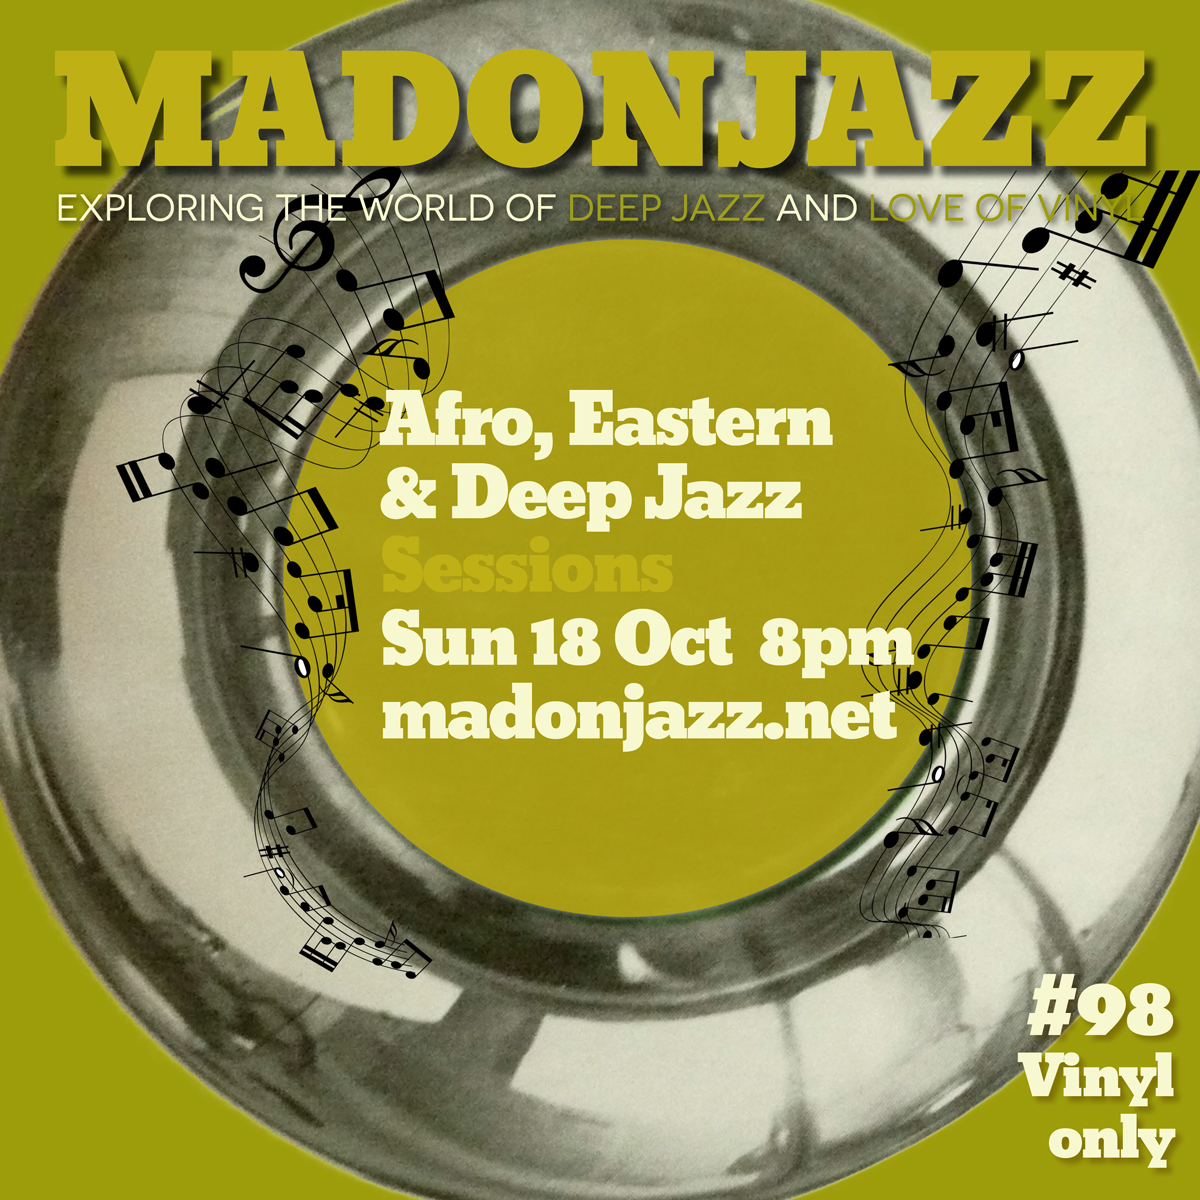 MADONJAZZ 18OCT Afro Eastern & Deep Jazz